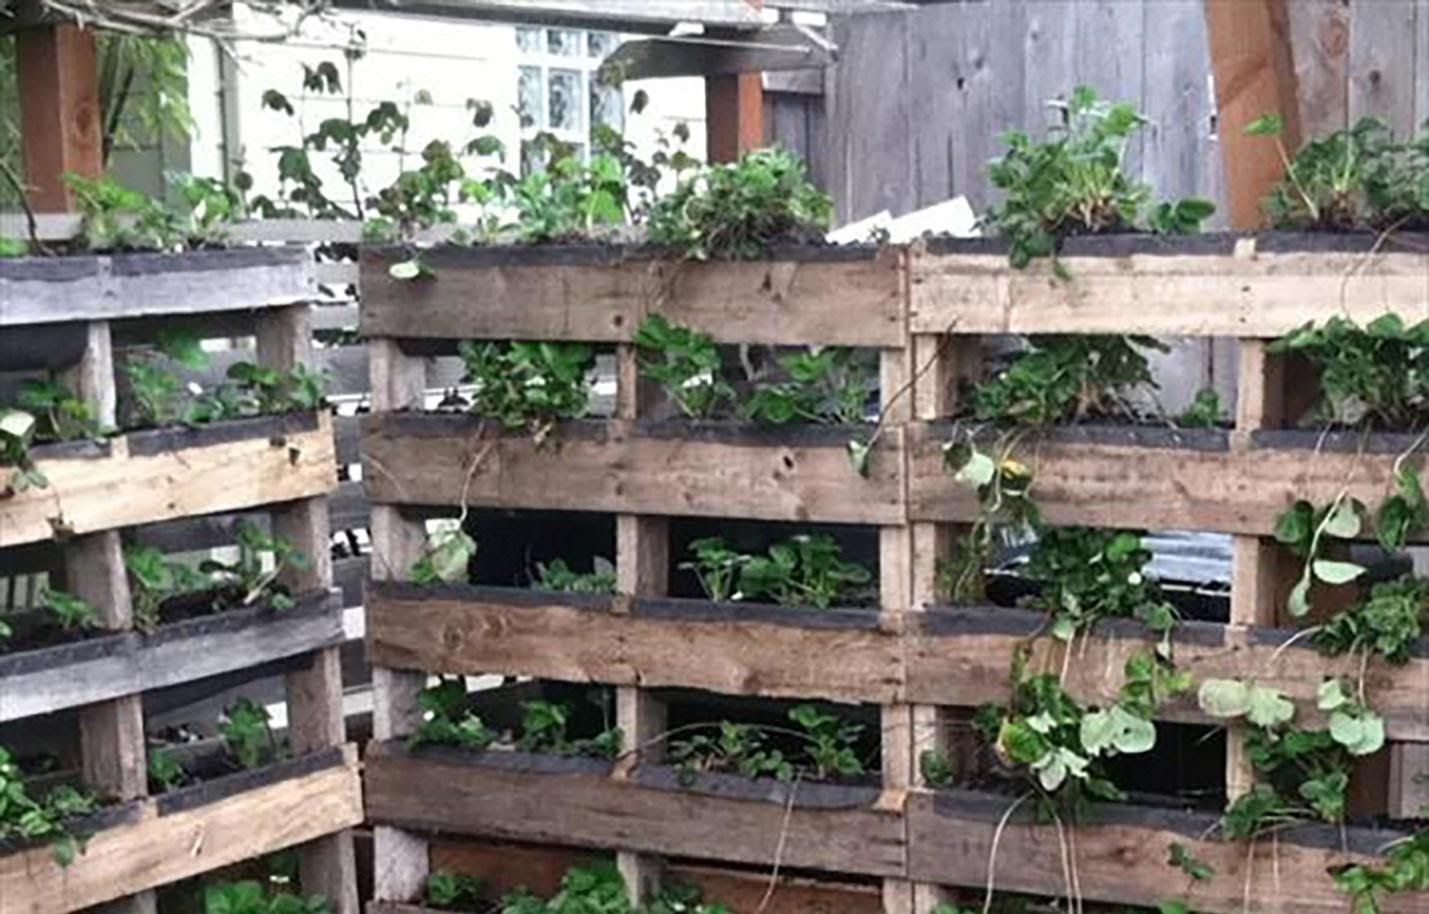 While You're at it, Make Your Pallets into Planters